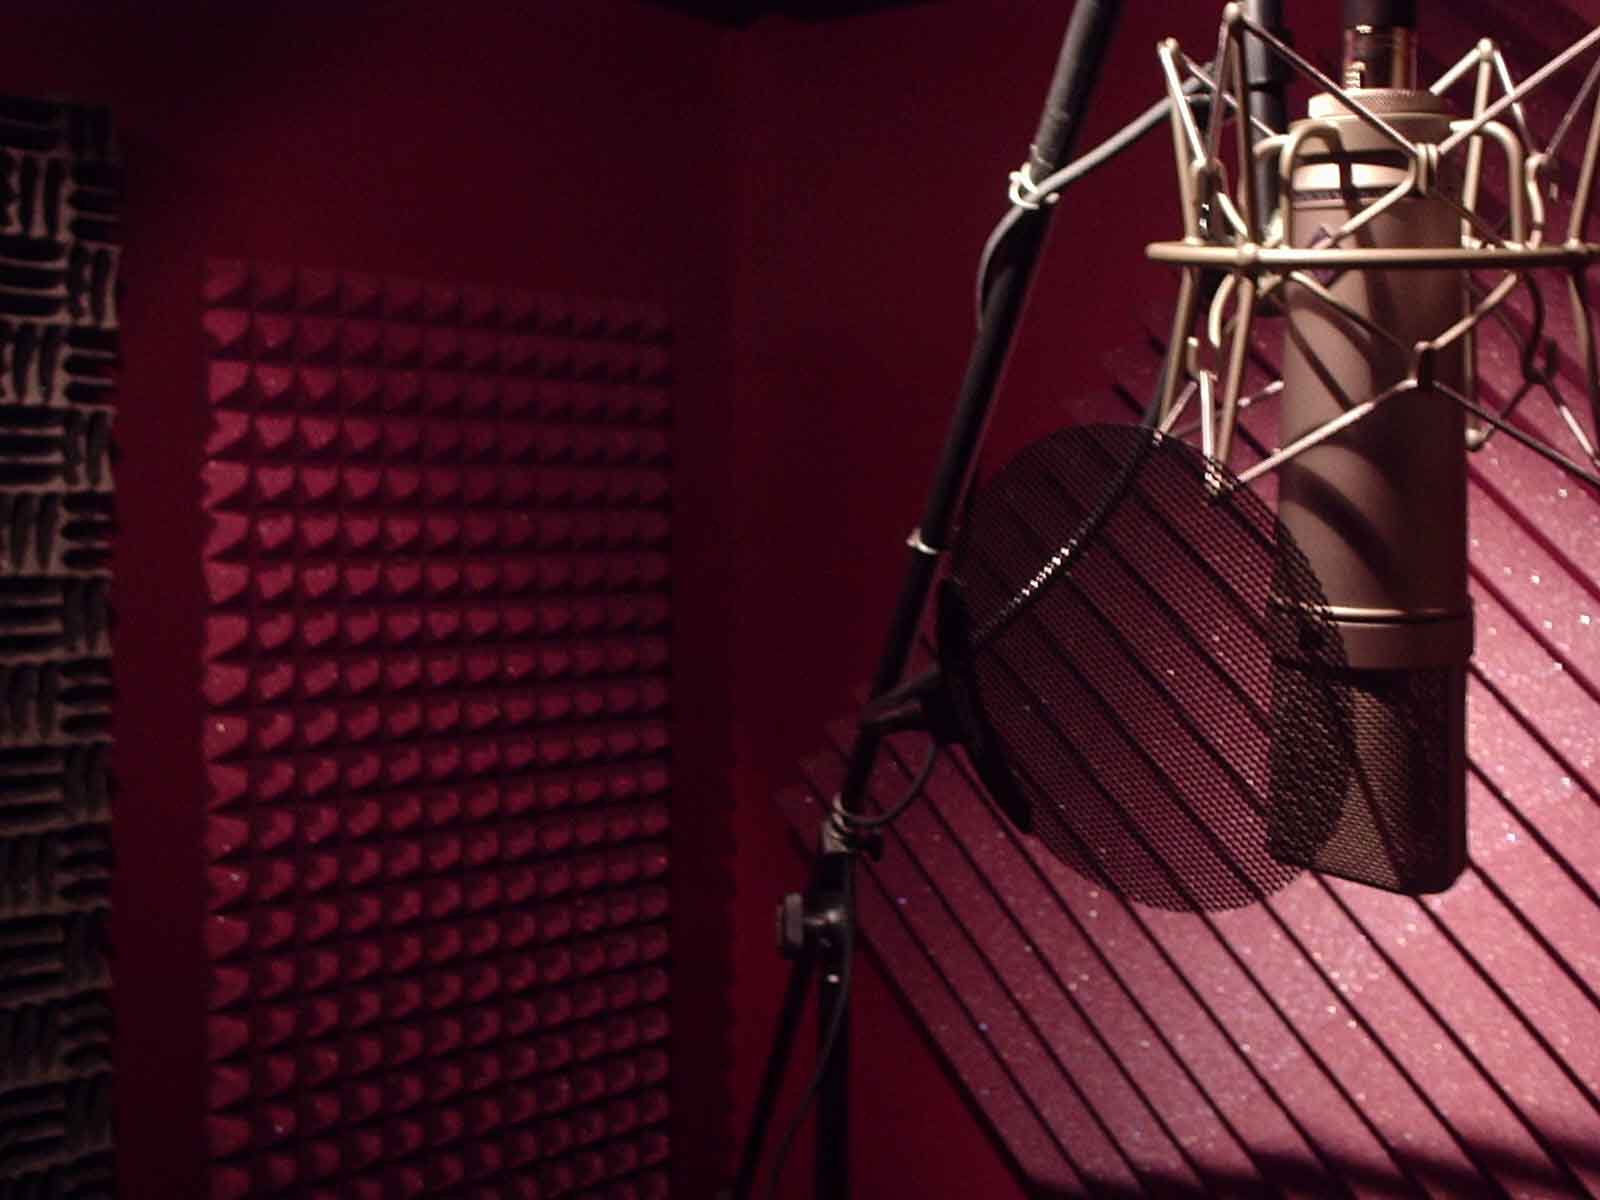 Booth Mic Booth Veneers Pic